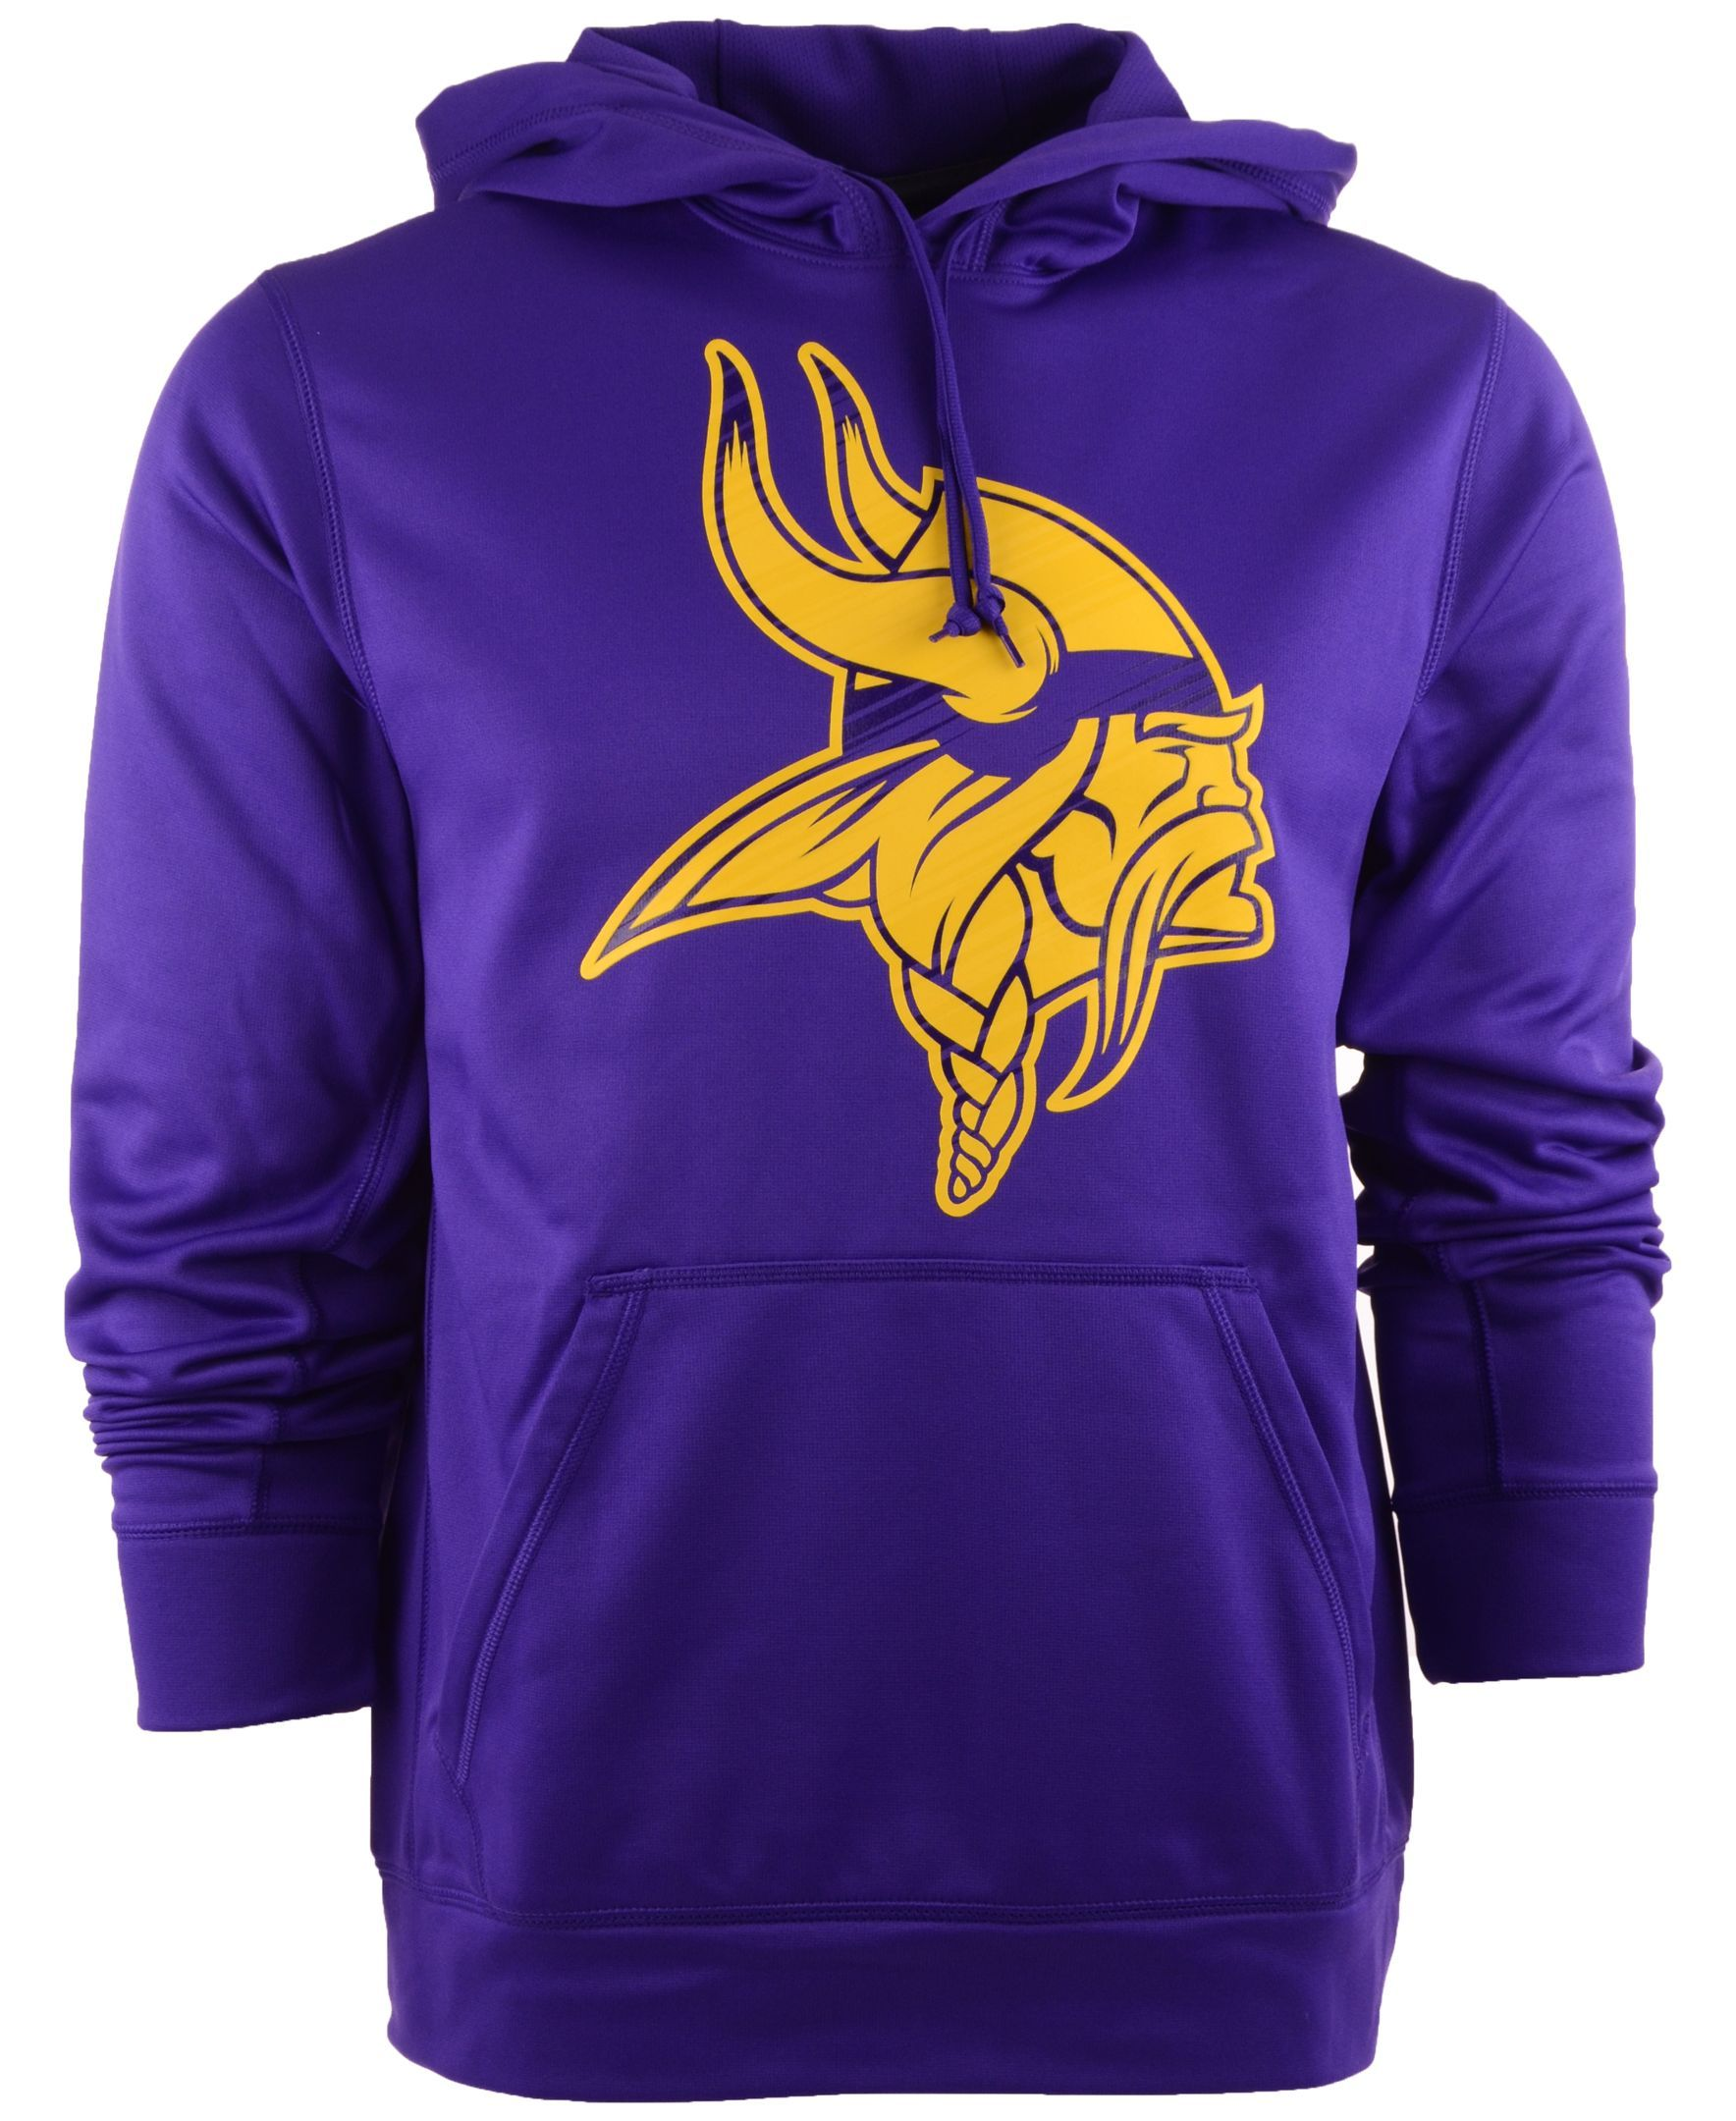 Nike Men s Minnesota Vikings Warp Performance Hoodie  5f2747cd9ce3